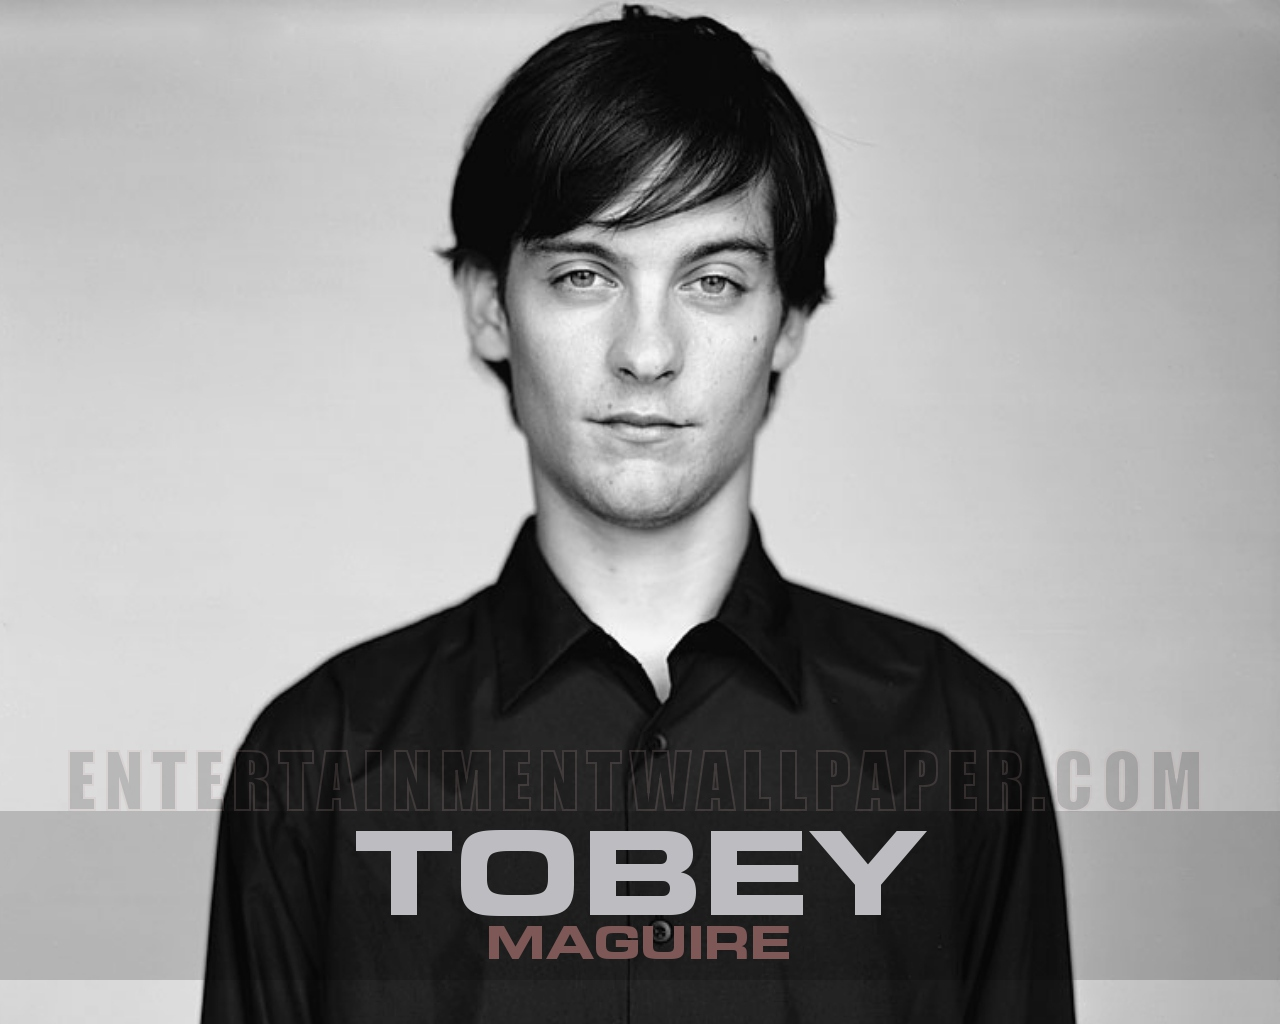 1280x1024 - Tobey Maguire Wallpapers 9